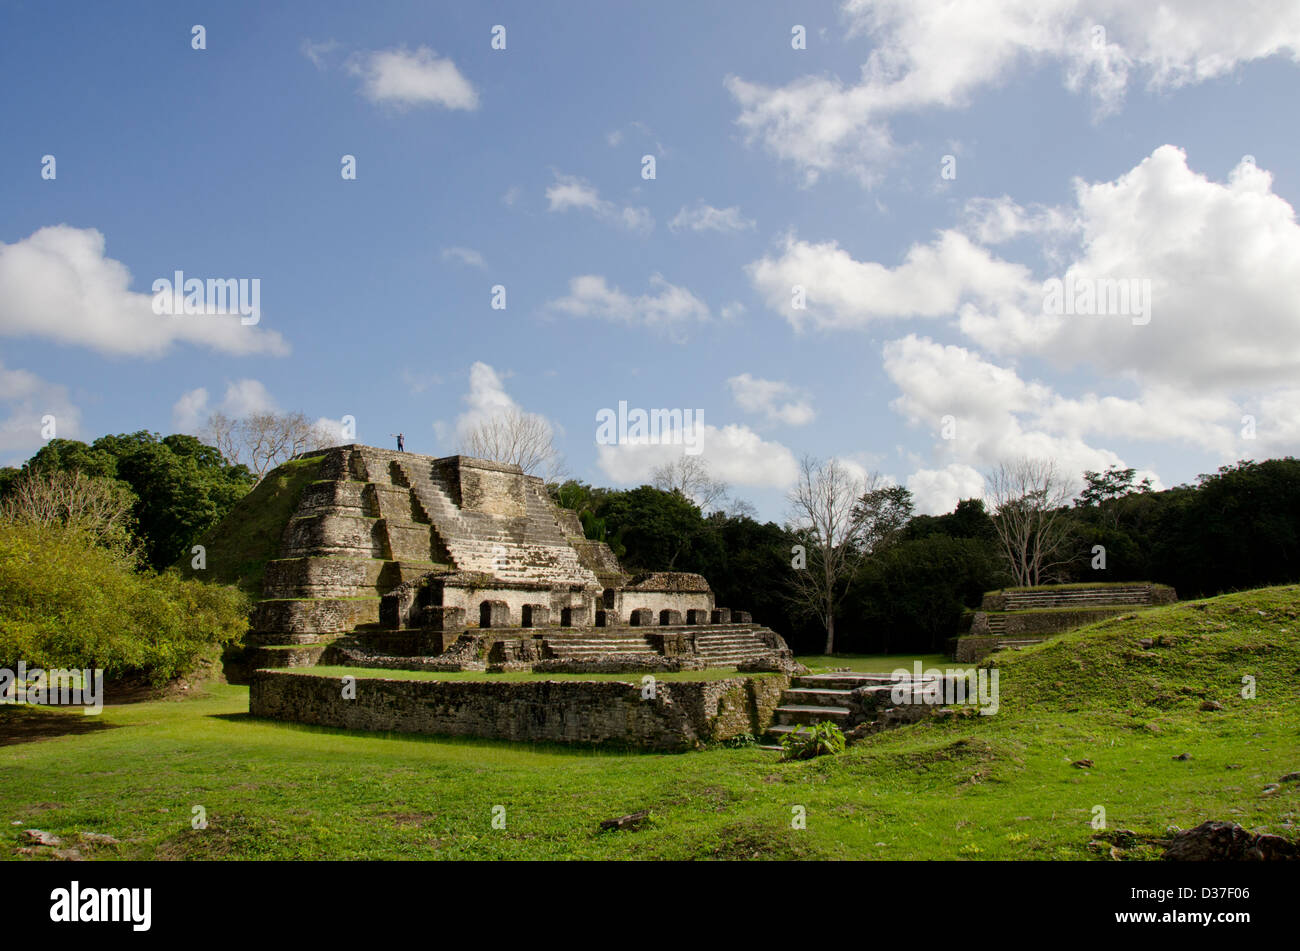 Belize, Altun Ha. Altun Ha, ruins of ancient Mayan ceremonial site from the Classic Period (1100 BC to AD 900). - Stock Image